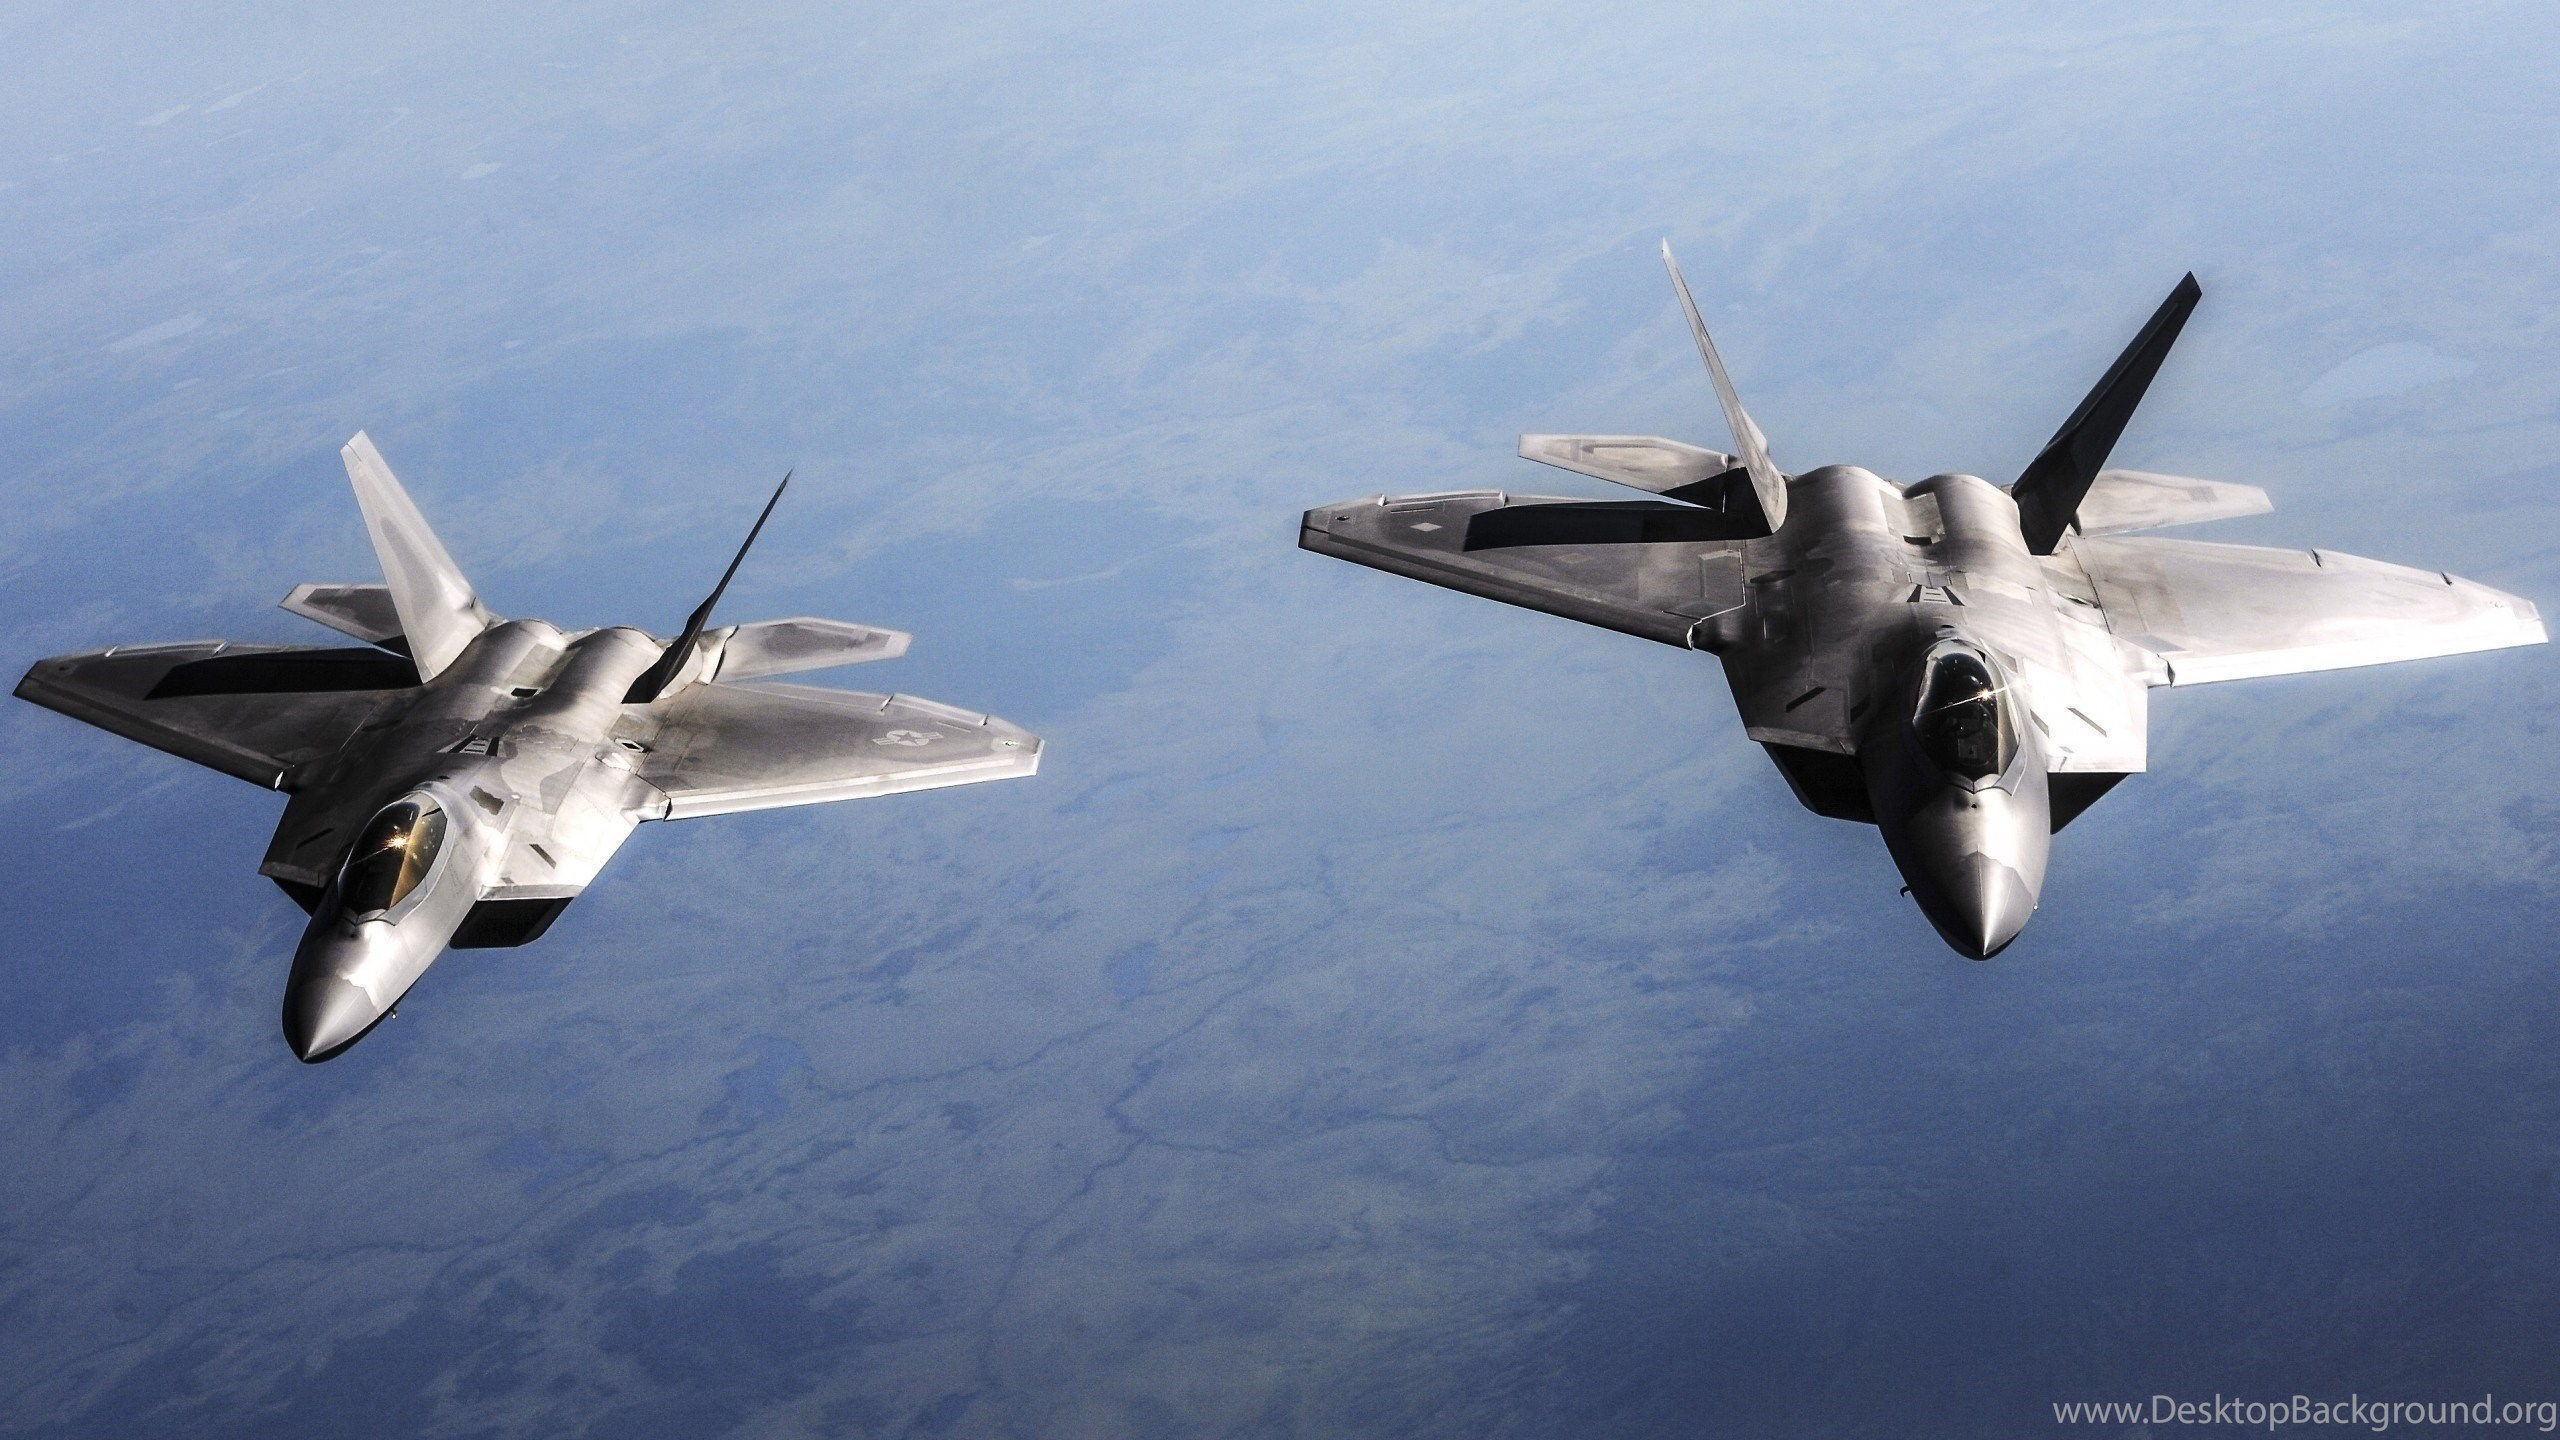 Wallpaper Hd Two Aircraft F 22 Raptor Hd Wallpapers Desktop Background